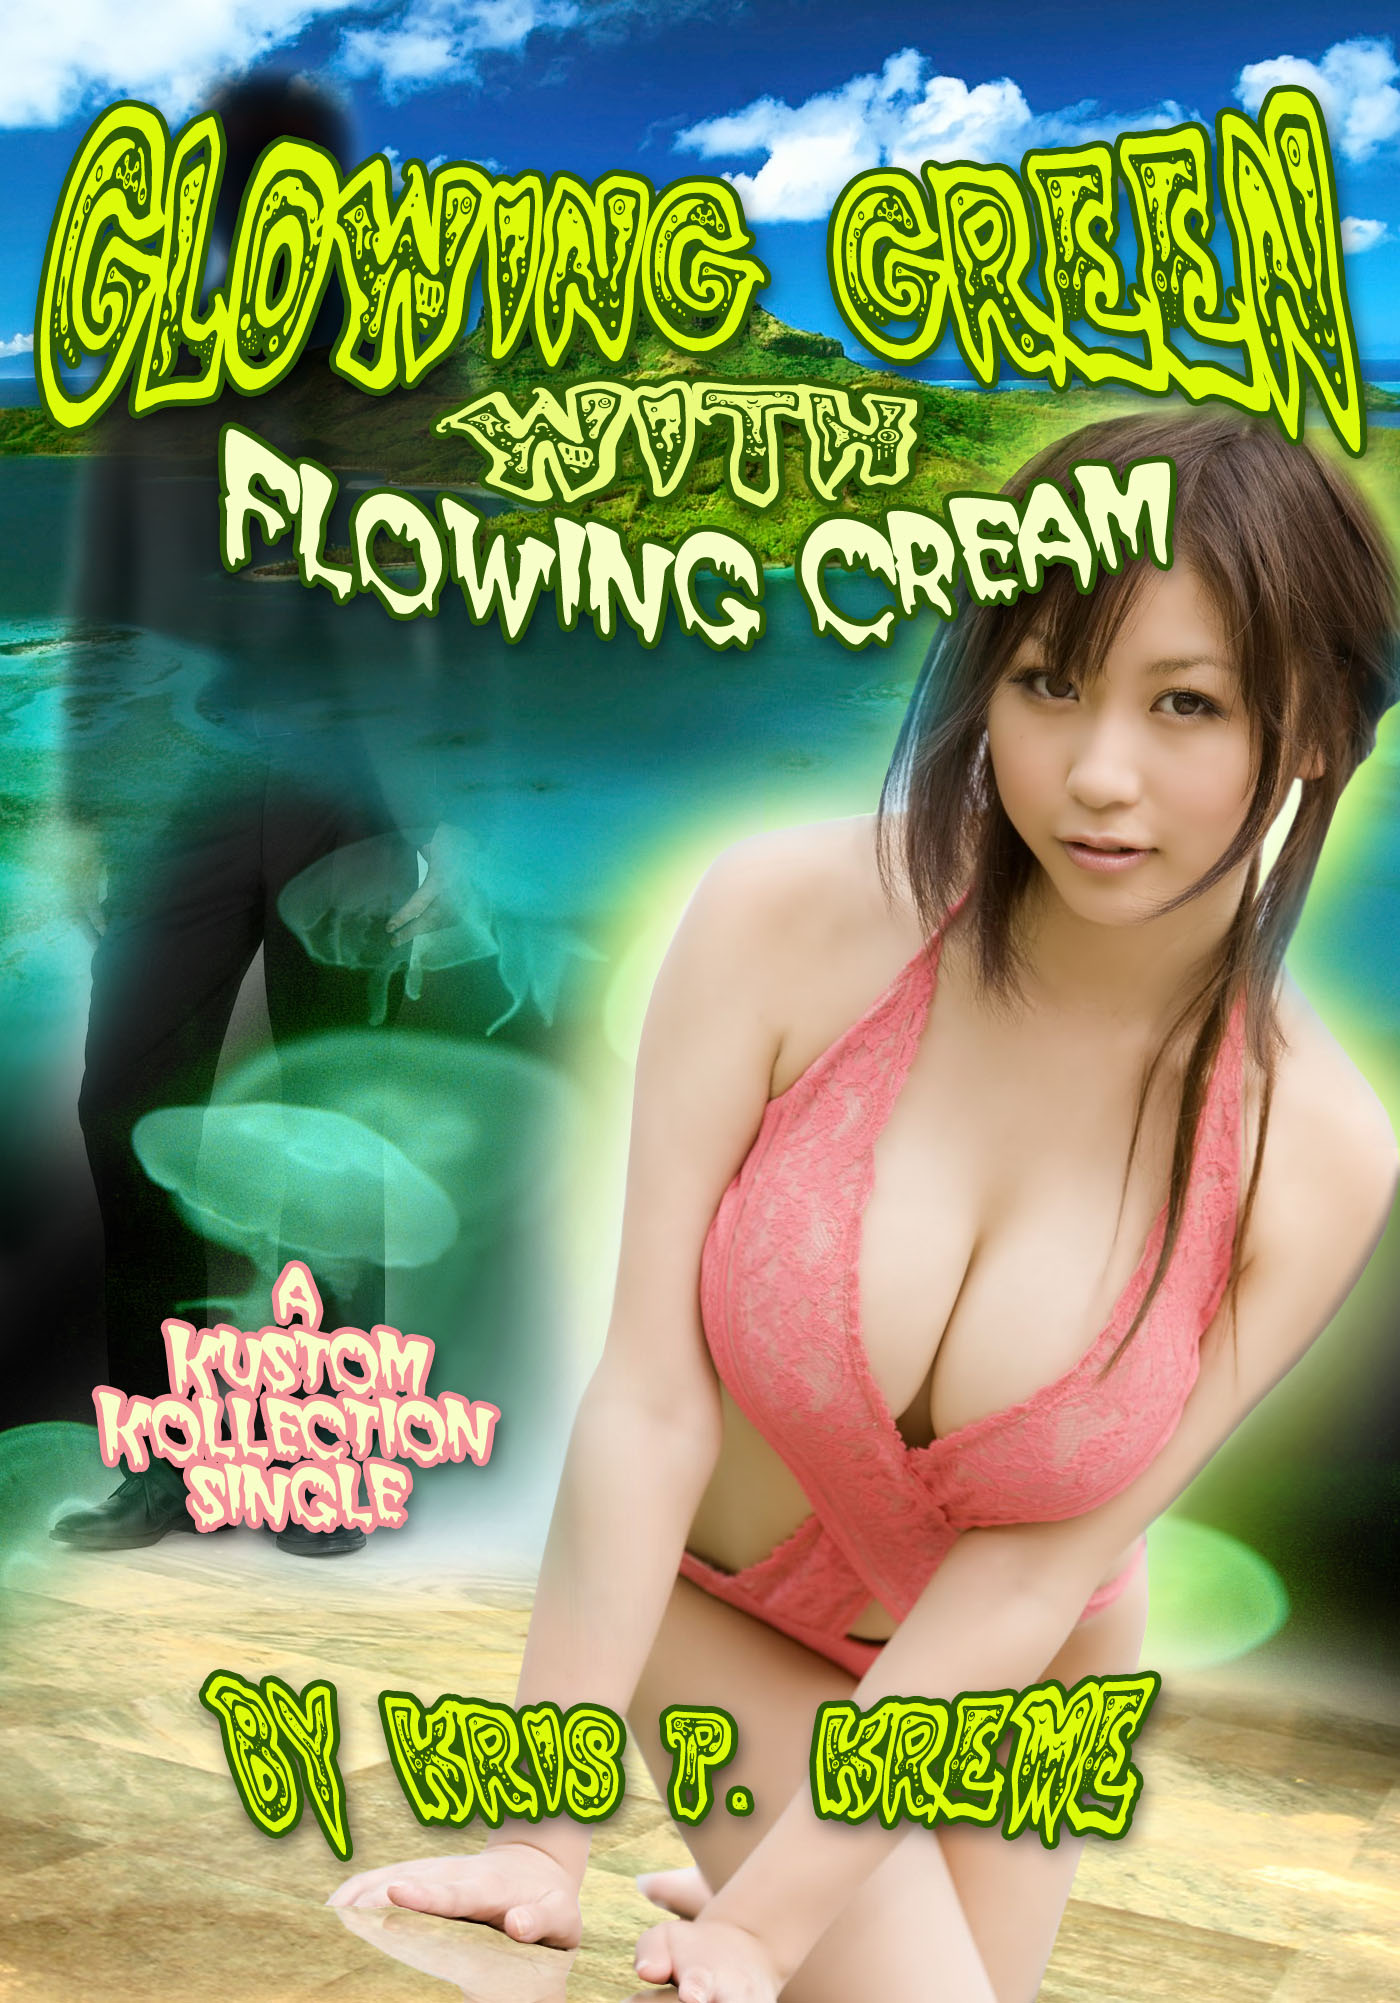 Glowing Green with Flowing Cream by Kris P. Kreme